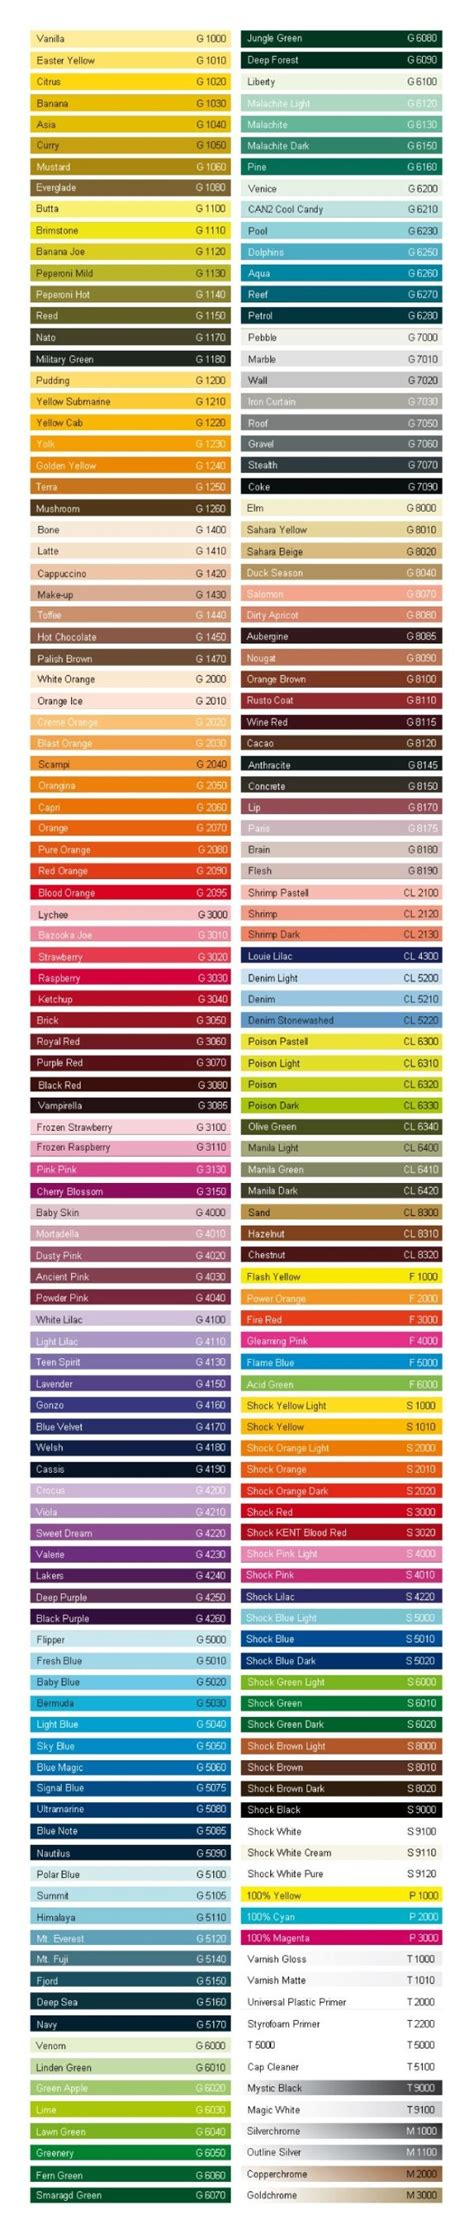 pantone color names pantone color names paint colors etc pinterest